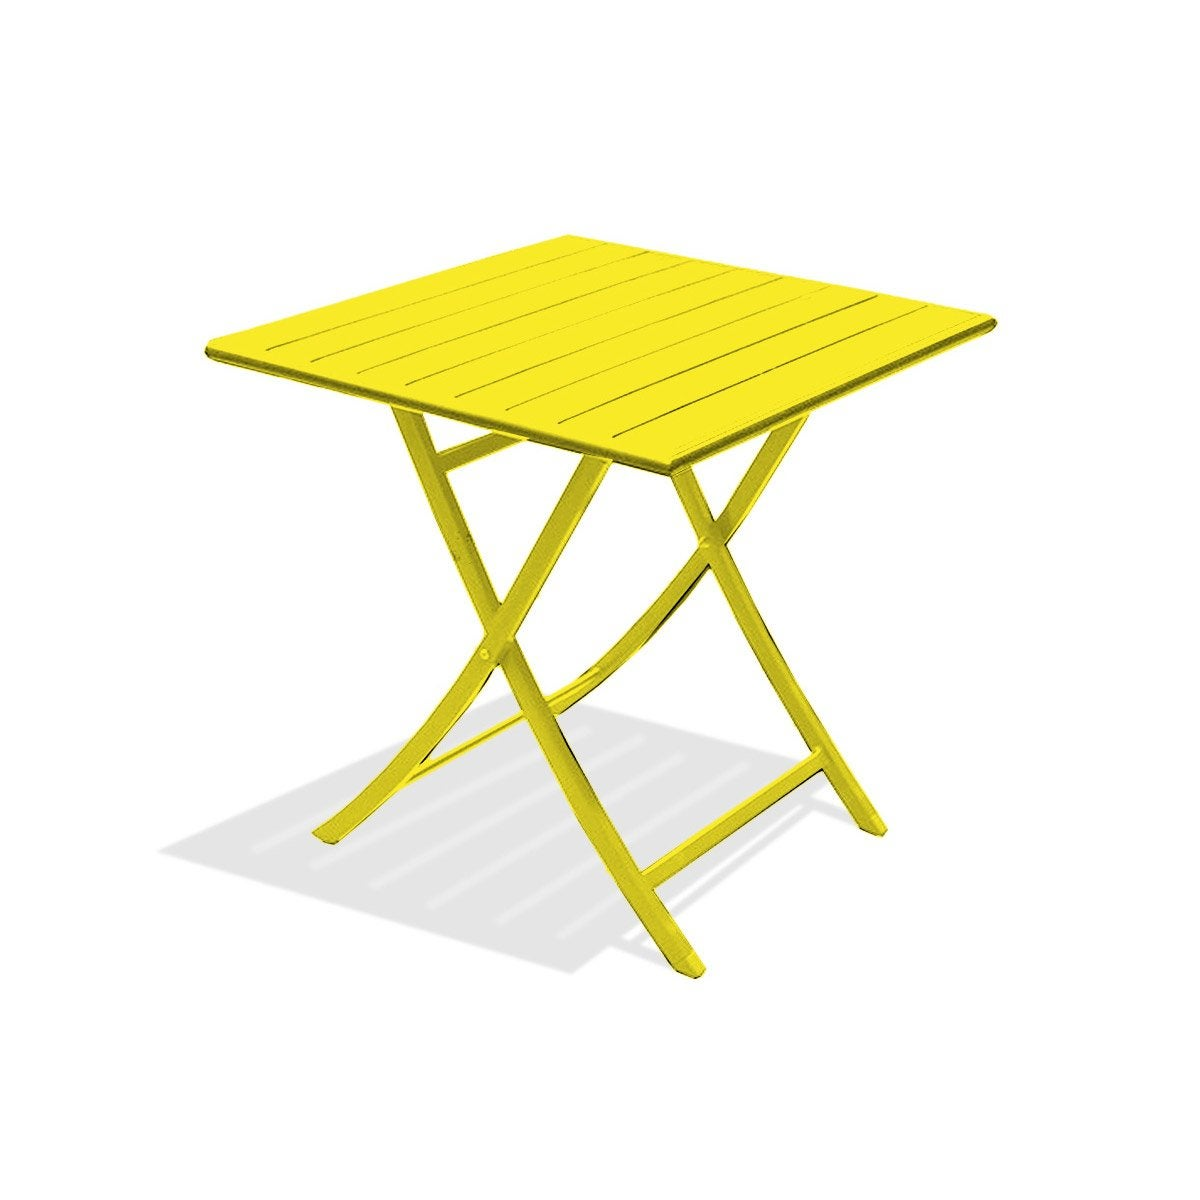 Table bois jardin leroy merlin for Leroy merlin table jardin